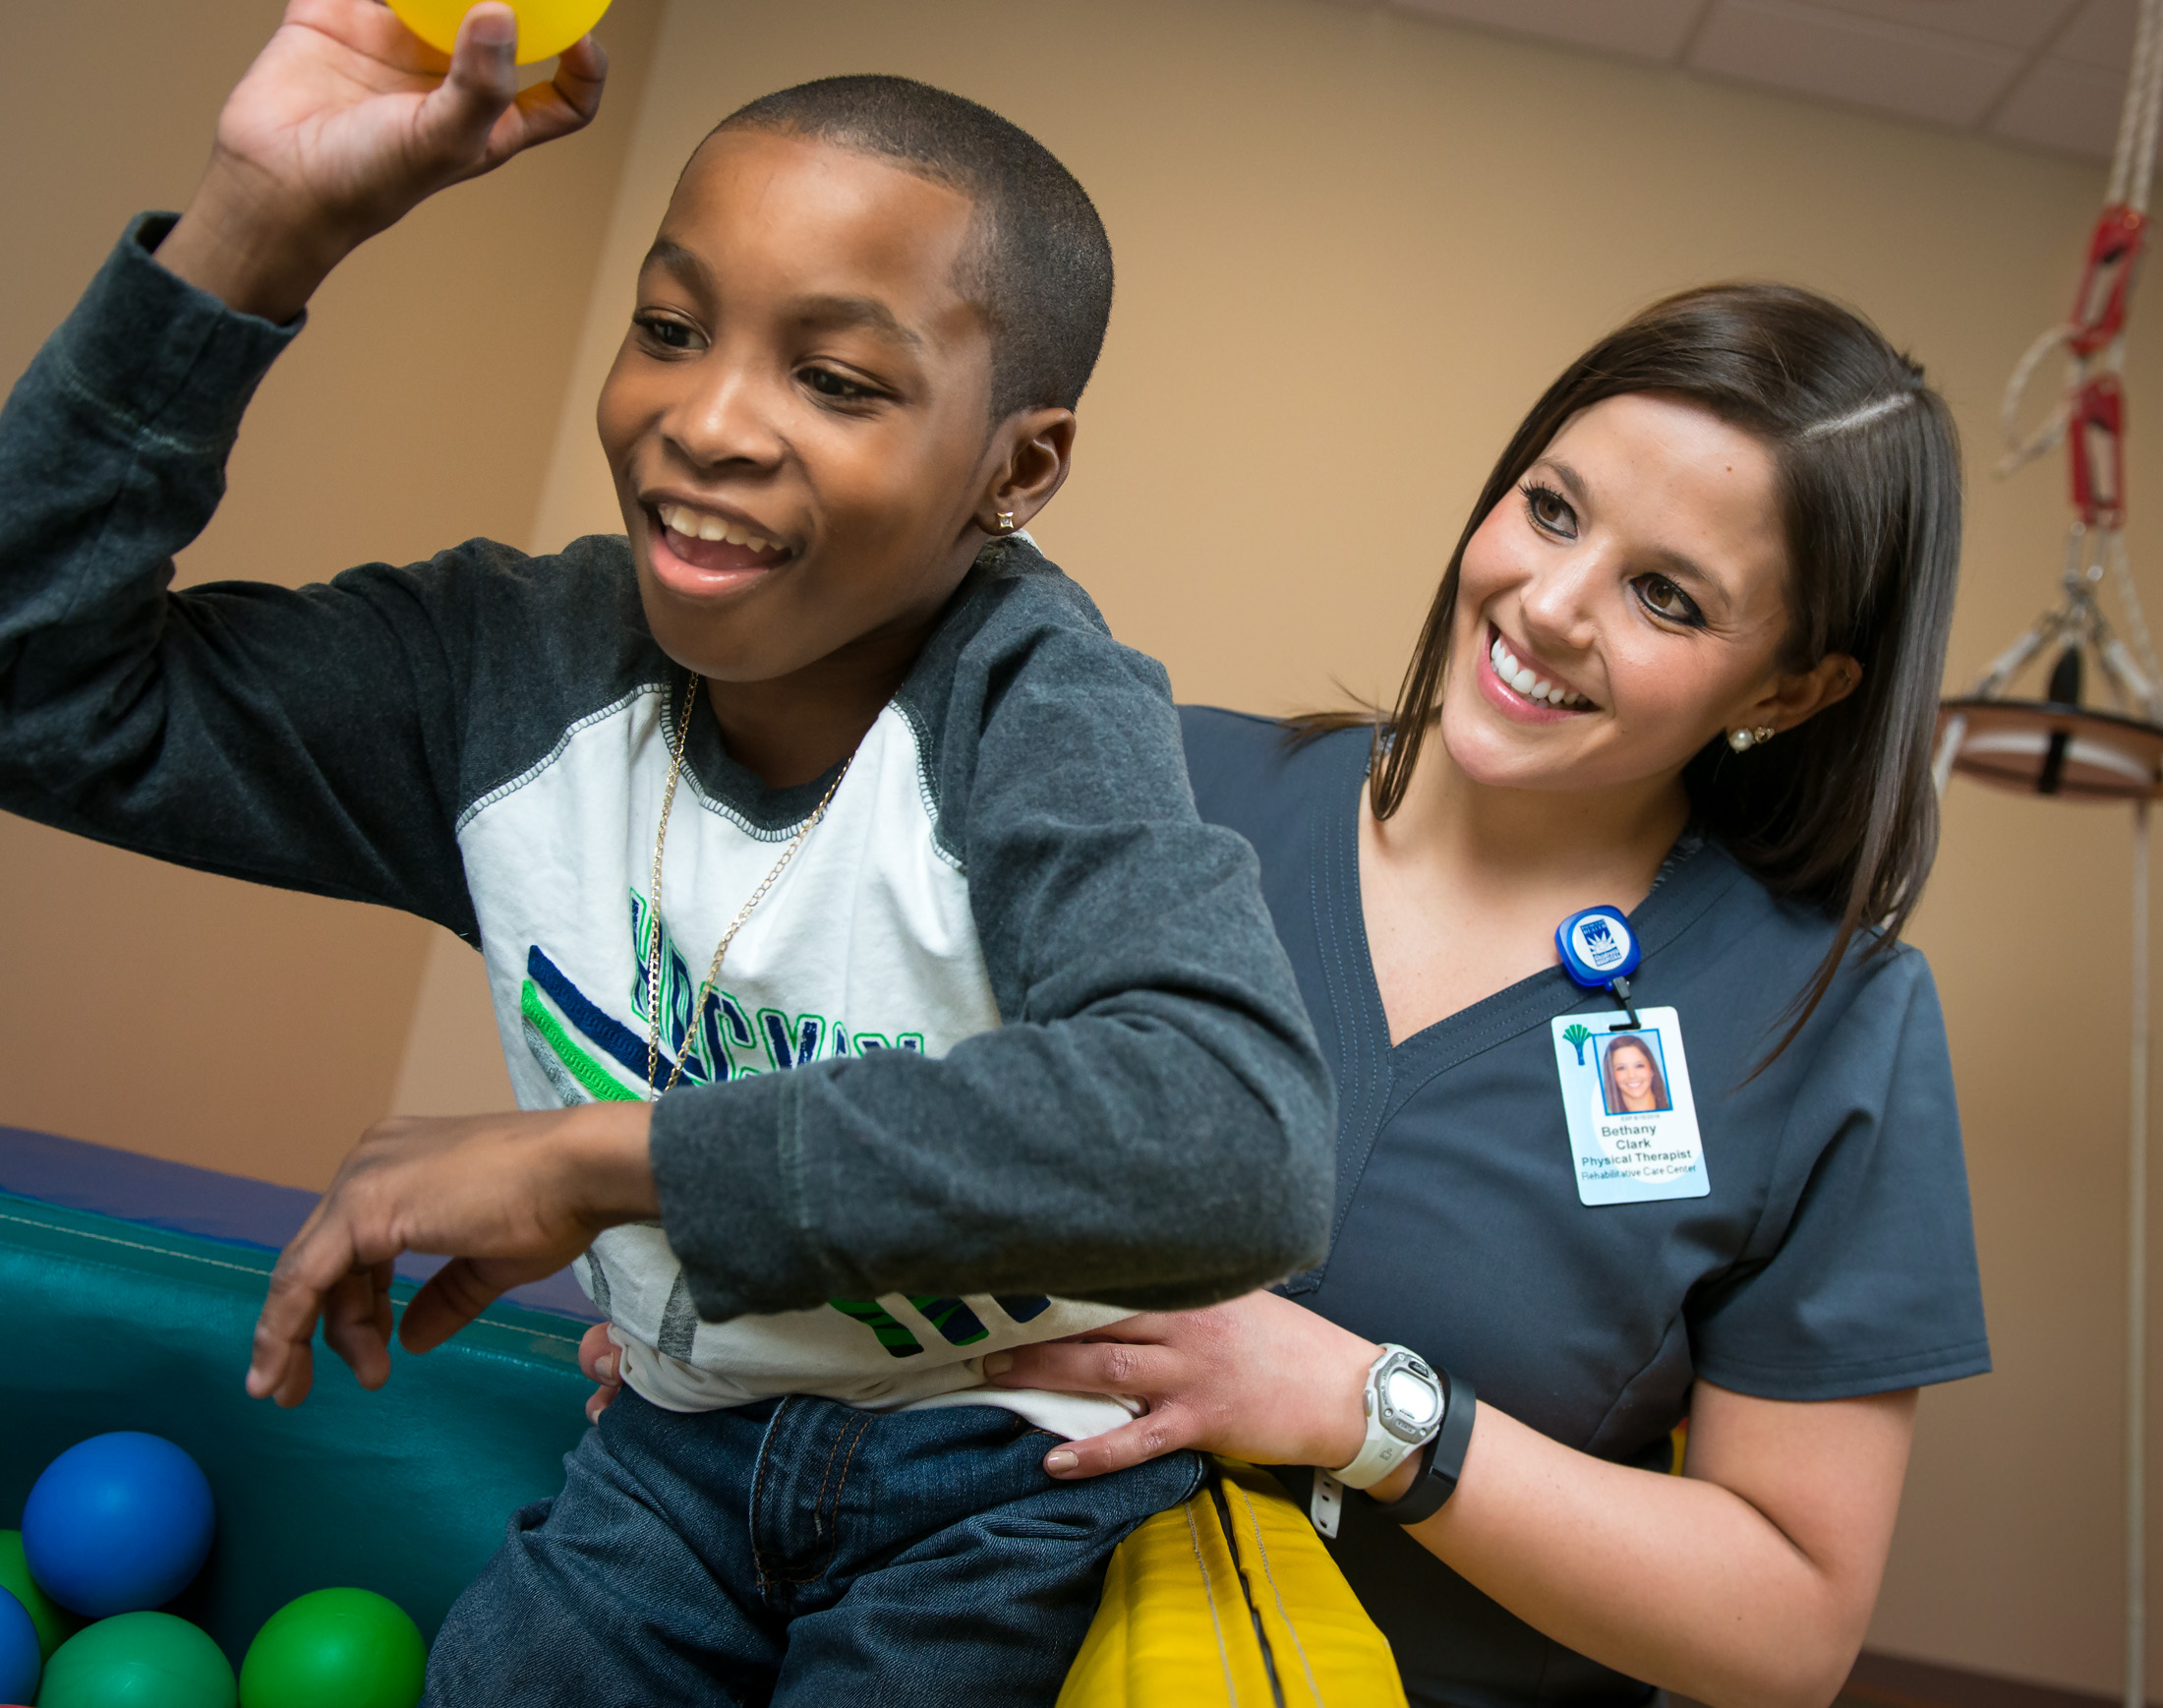 Pediatric Physical And Specialty Therapy Appointments Prisma Health Children S Hospital Midlands Columbia Sc